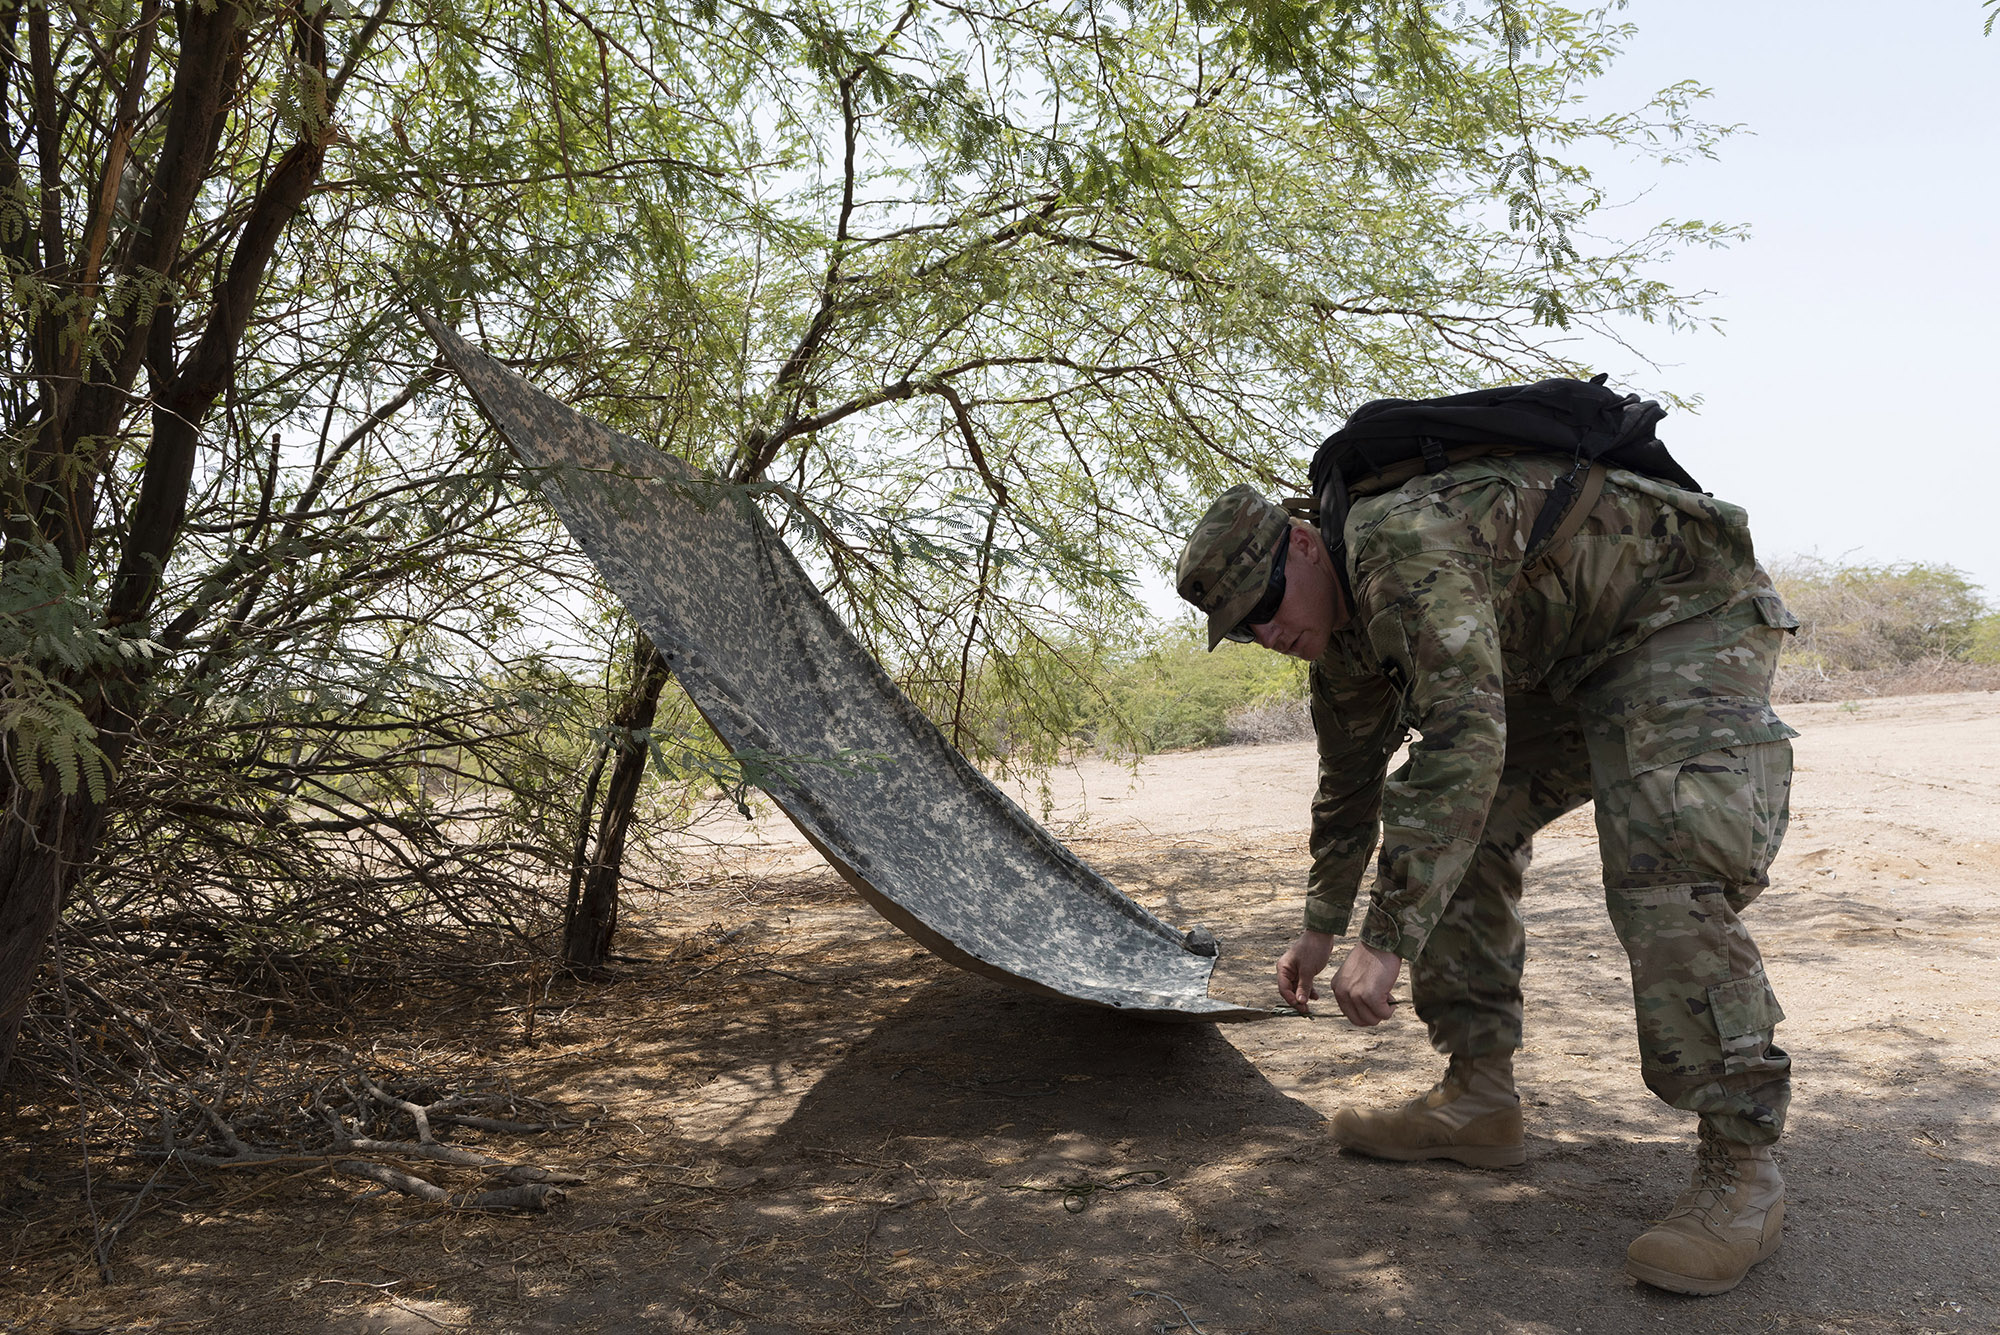 U.S. Army Spec. Killian Tooke, a radar repairer with 3rd Battalion, 133rd Field Artillery Regiment, Texas National Guard, uses a poncho liner to create a shaded shelter during survival skills training on Camp Lemonnier, Djibouti, Oct. 13, 2018. During this training, Tooke completed various tasks such as constructing a shelter, finding alternative water sources and signaling for rescue. (U.S. Air National Guard photo by Master Sgt. Sarah Mattison)